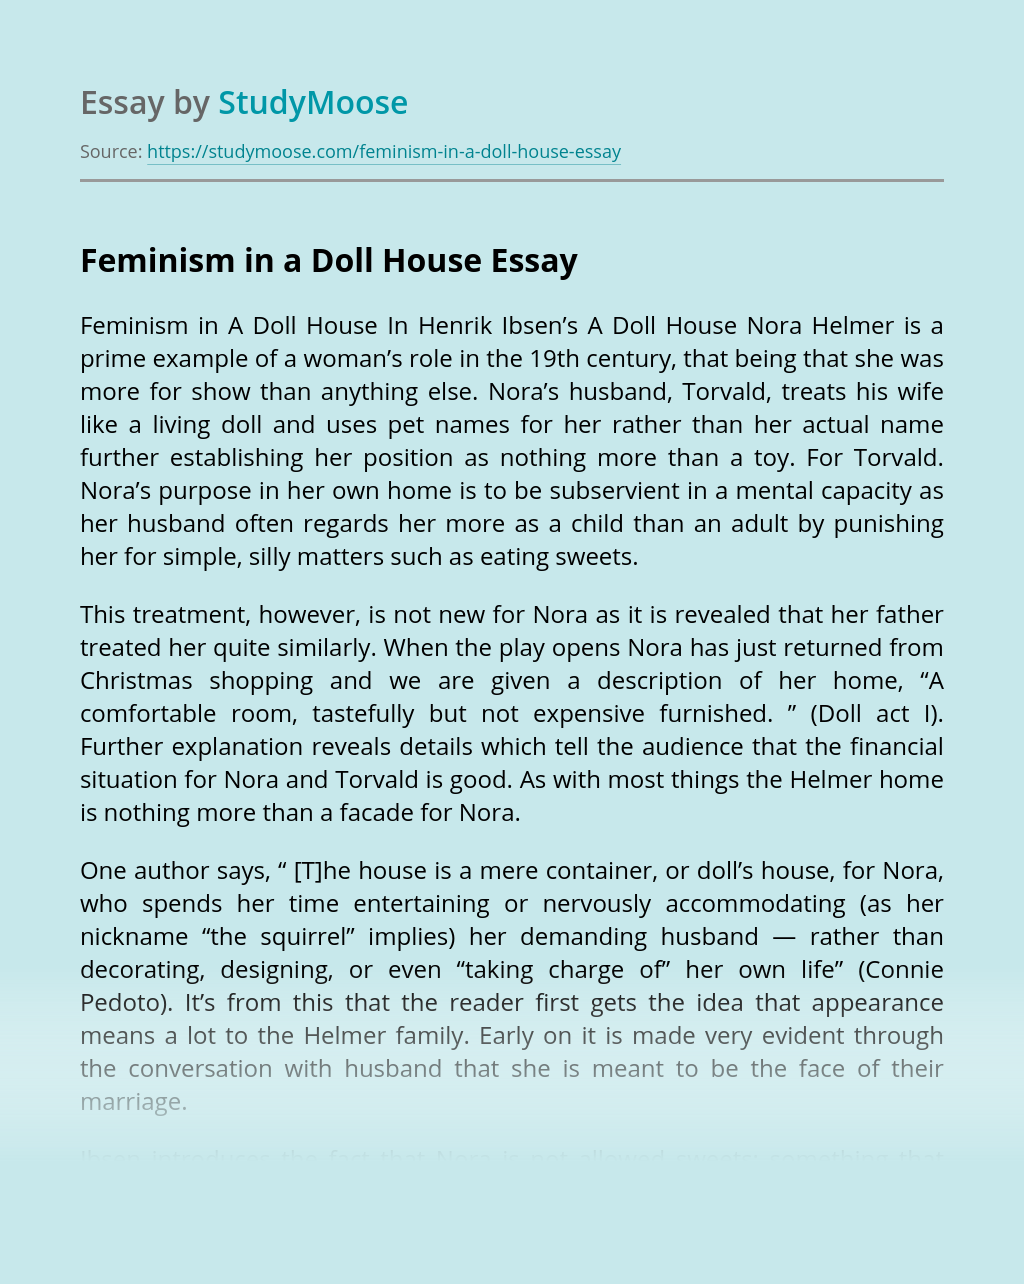 Feminism in a Doll House